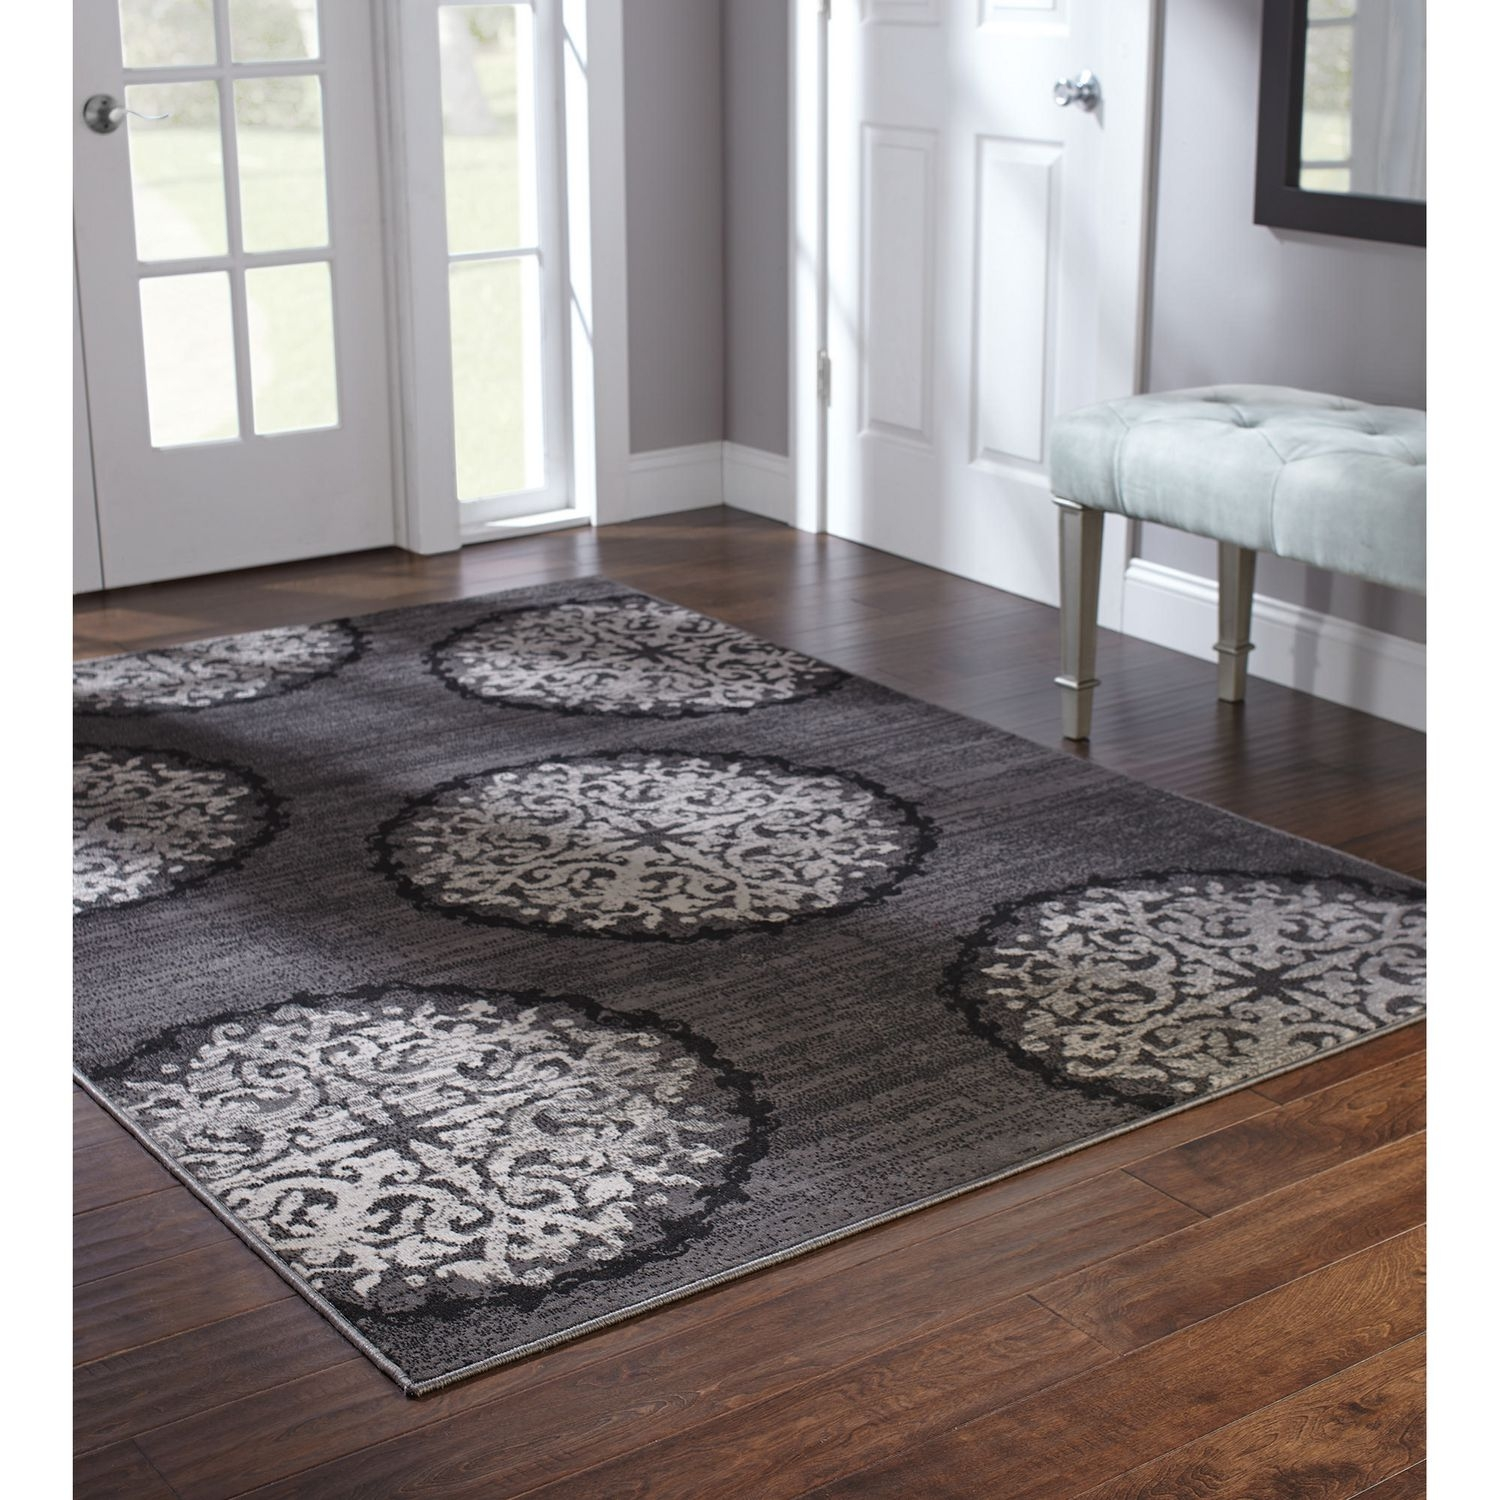 Rugs Cheap 8 X 10 Area Rugs 8×10 Area Rug Wool Area Rugs 8×10 Pertaining To Cheap Silver Rugs (Image 13 of 15)